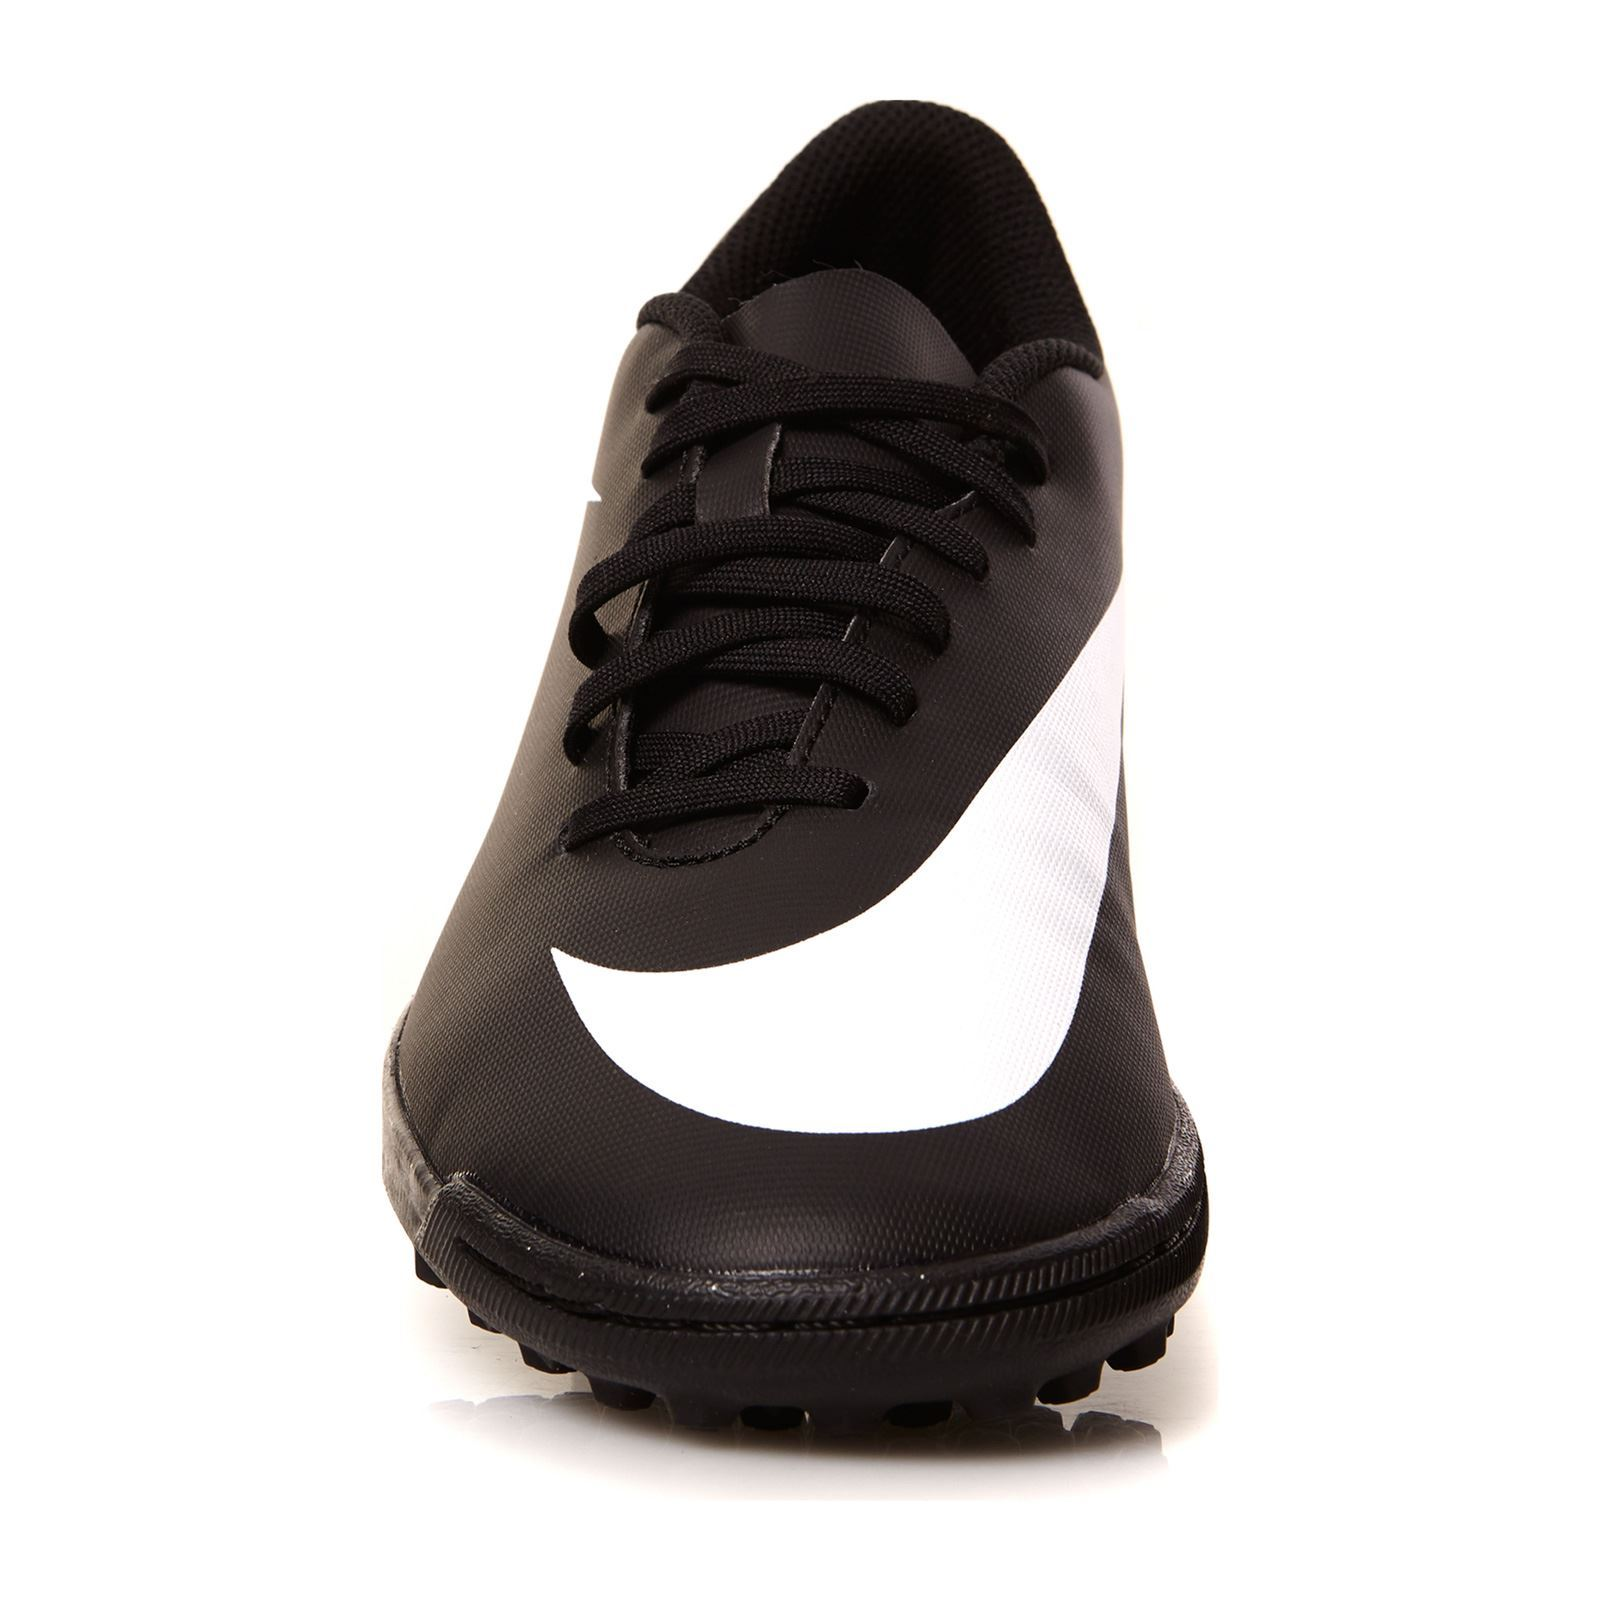 new products 43fc0 5f7d8 NIKE Chaussures de foot - noir